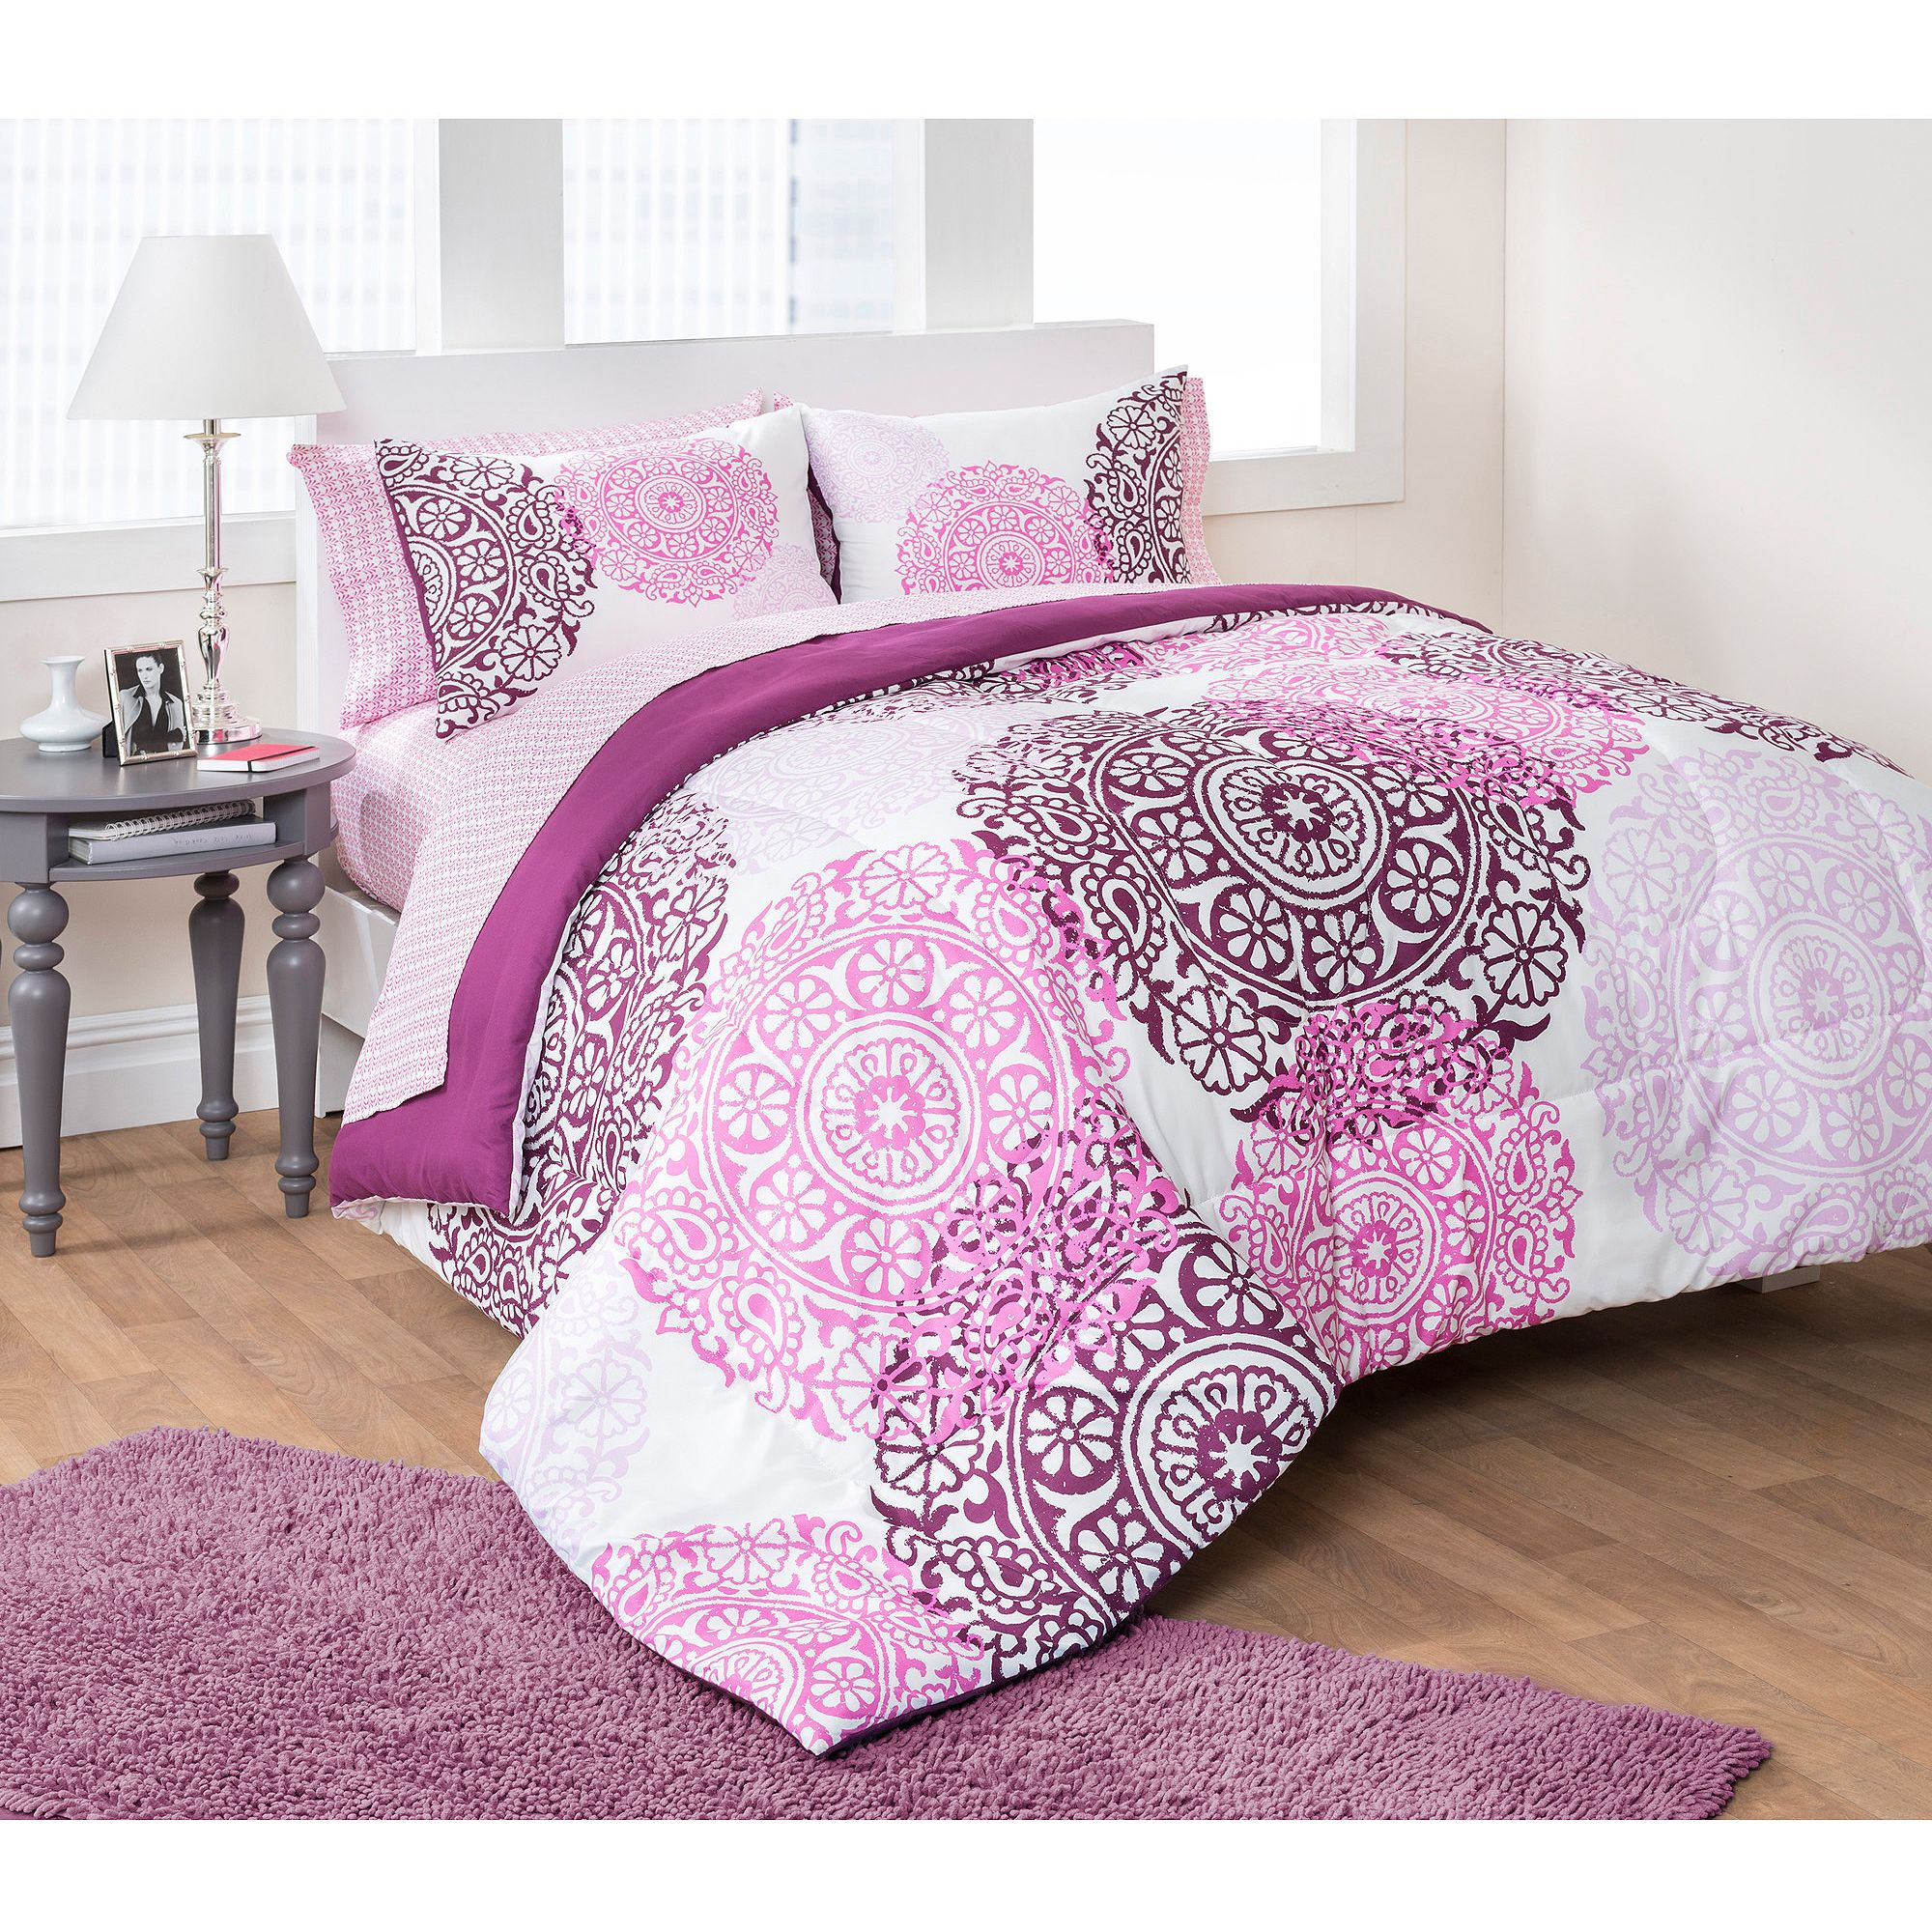 Formula Hippie Heaven Bed in a Bag Bedding Set